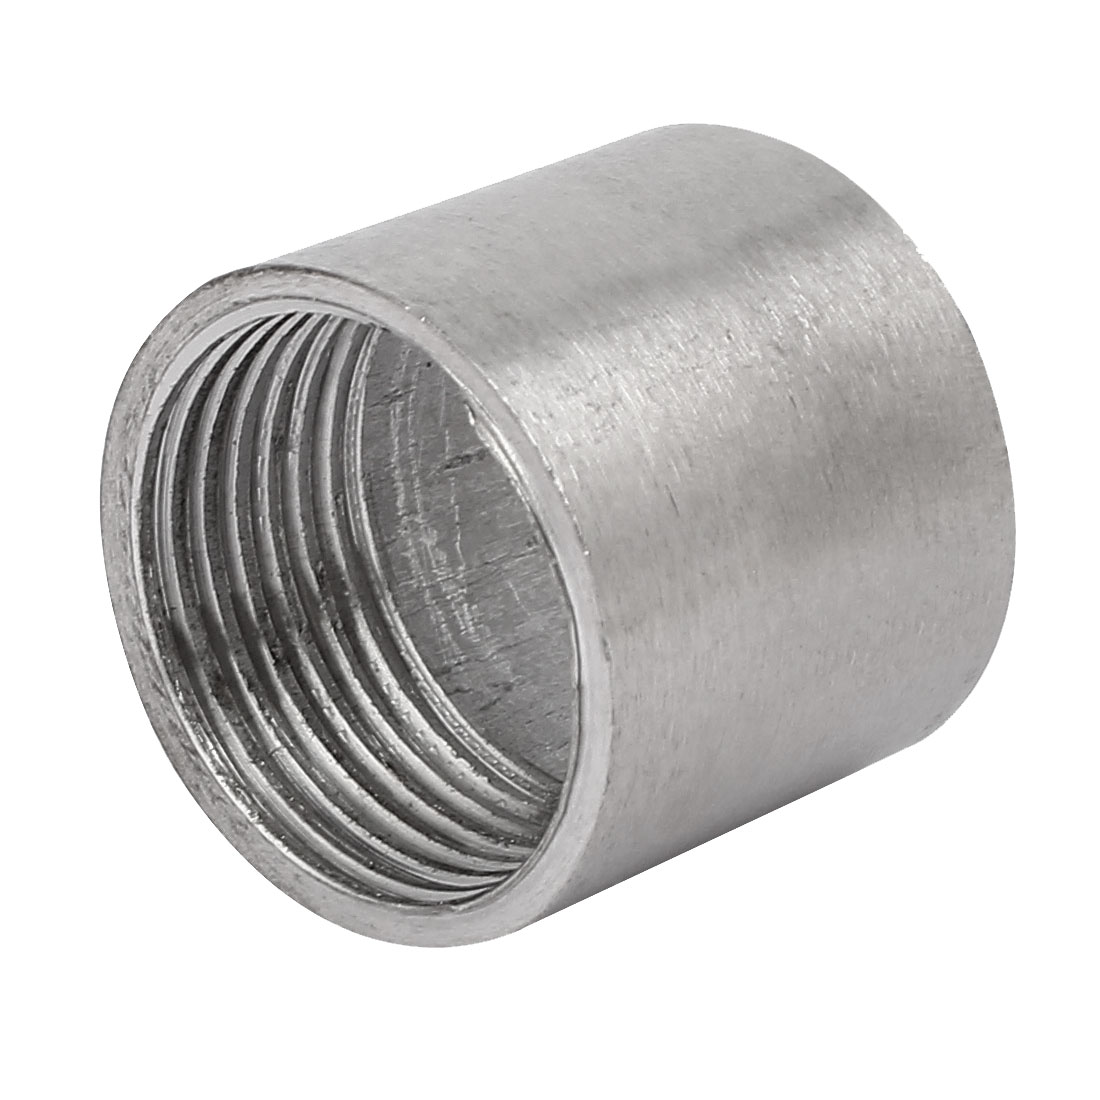 1BSP Stainless Steel Female Thread Weld On Straight Joint Nozzle Adapter